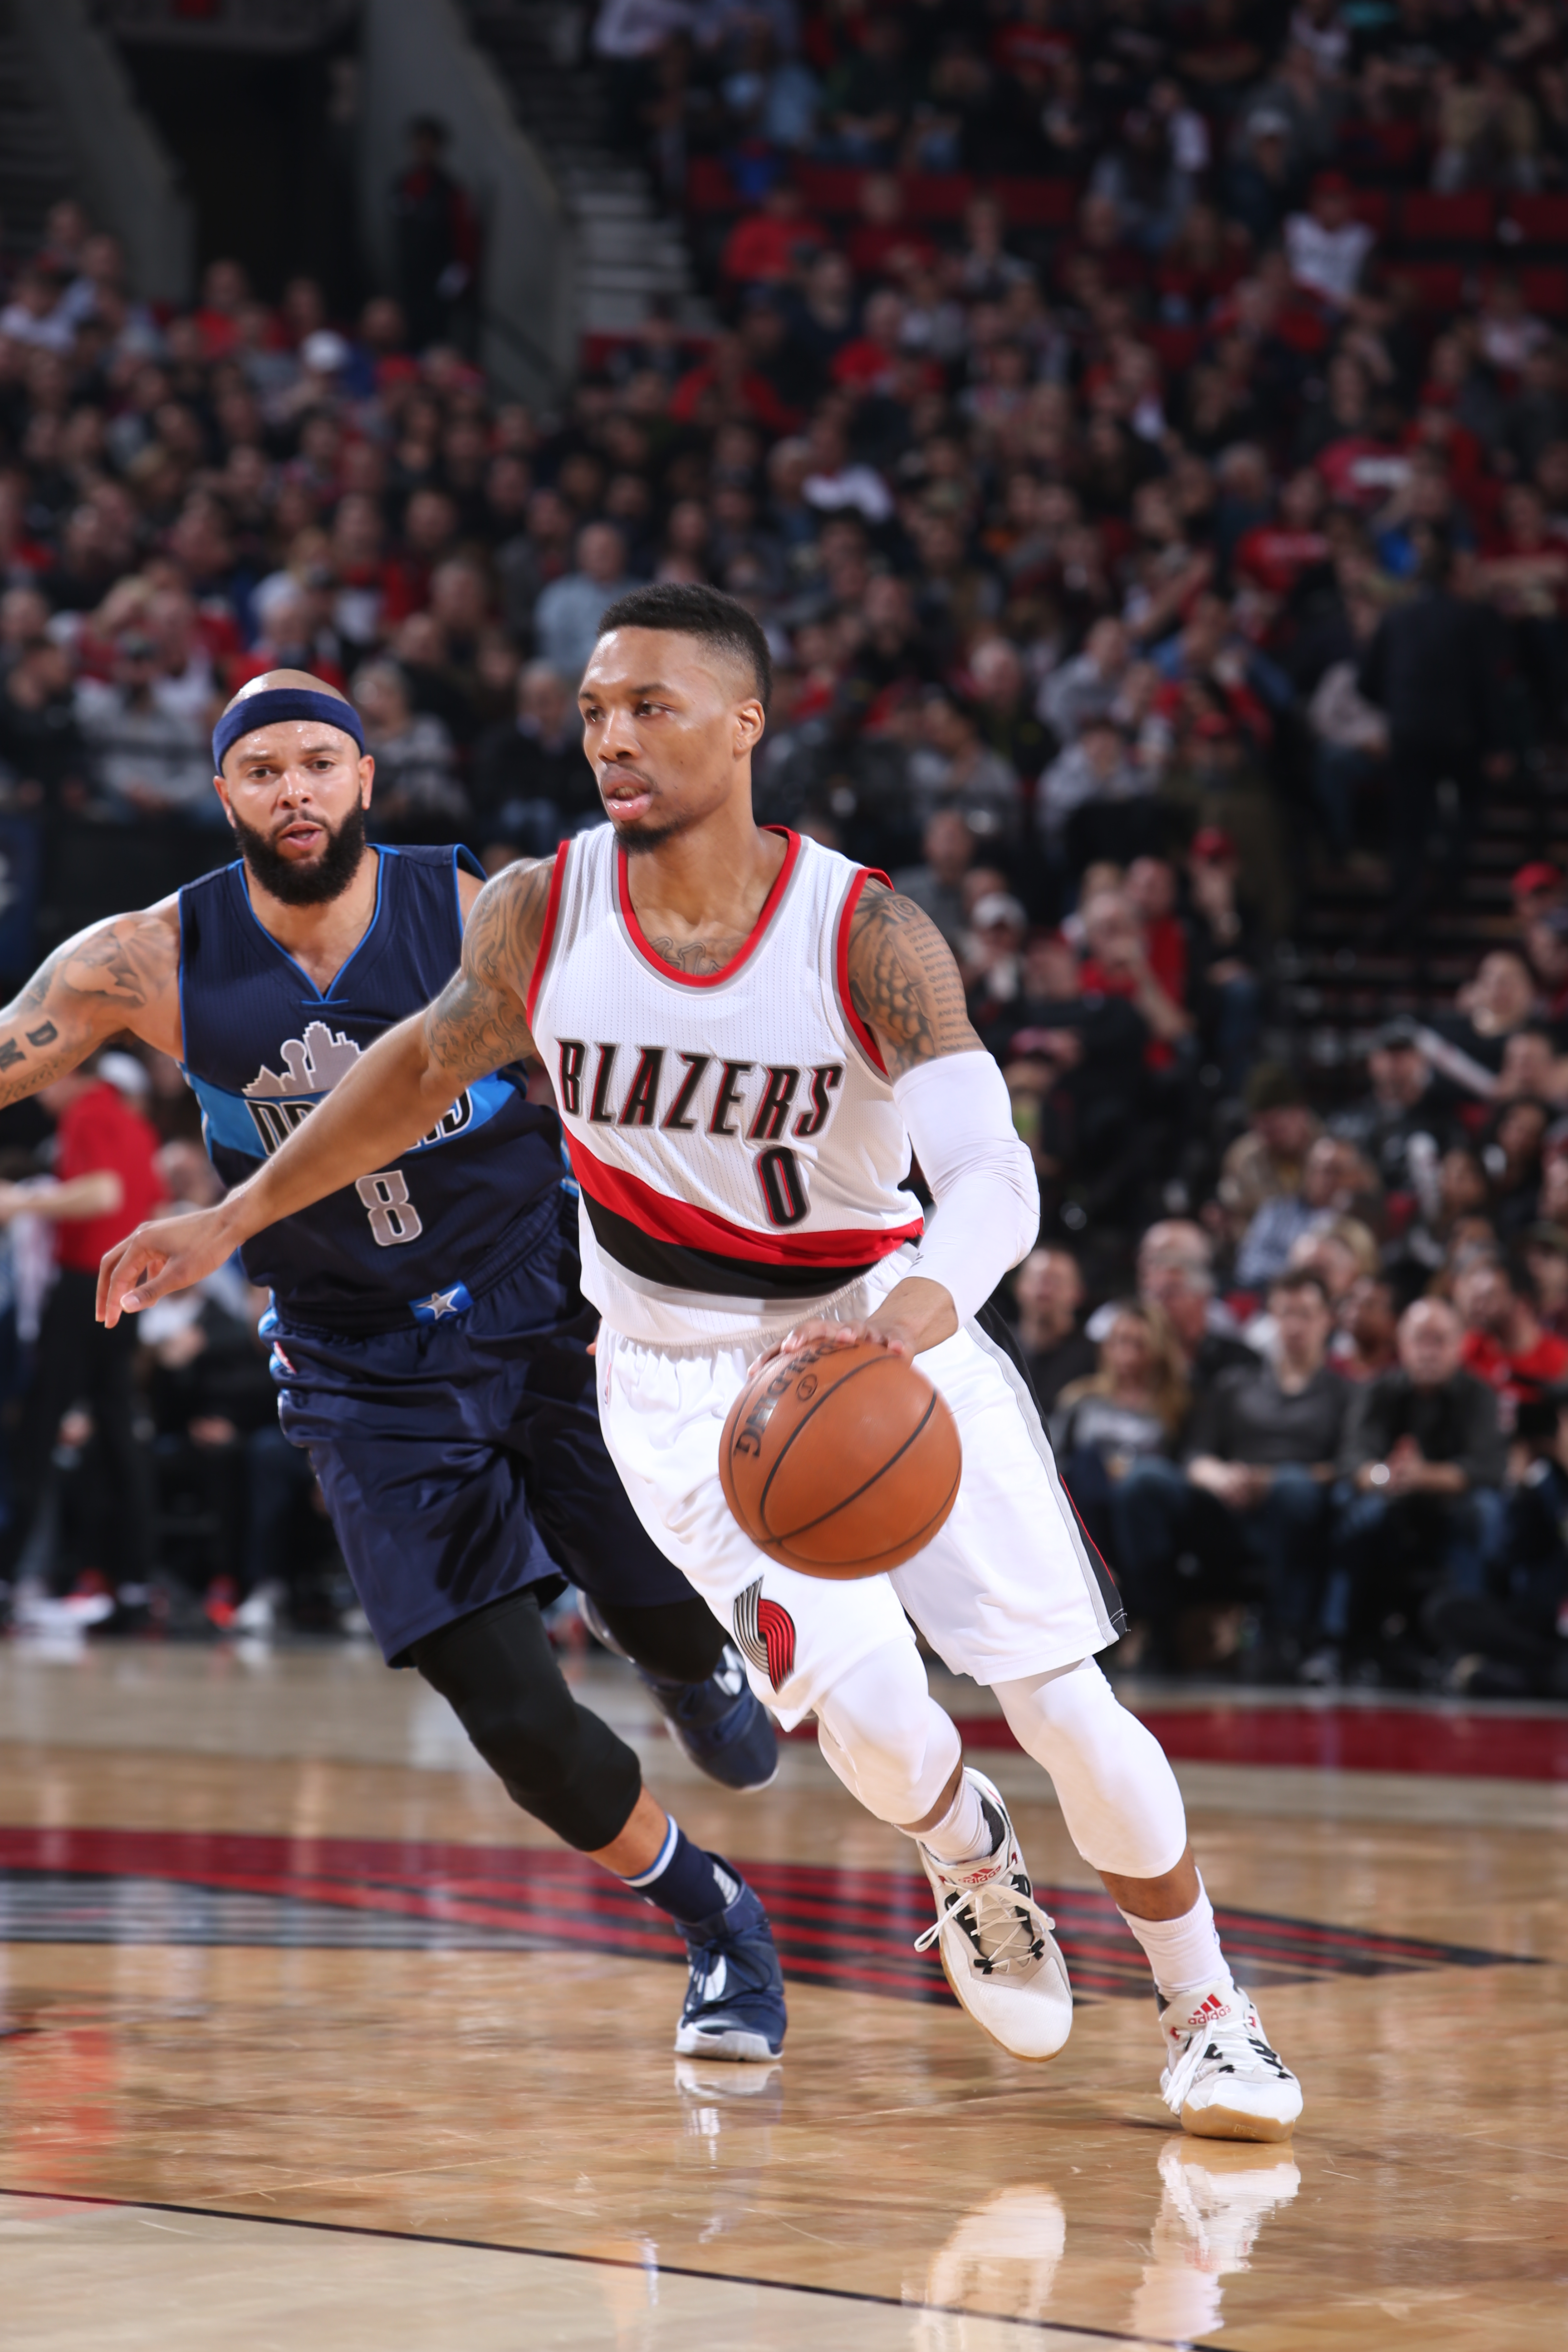 PORTLAND, OR - MARCH 23:  Damian Lillard #0 of the Portland Trail Blazers drives to the basket against Deron Williams #8 of the Dallas Mavericks on March 23, 2016 at the Moda Center in Portland, Oregon. (Photo by Sam Forencich/NBAE via Getty Images)